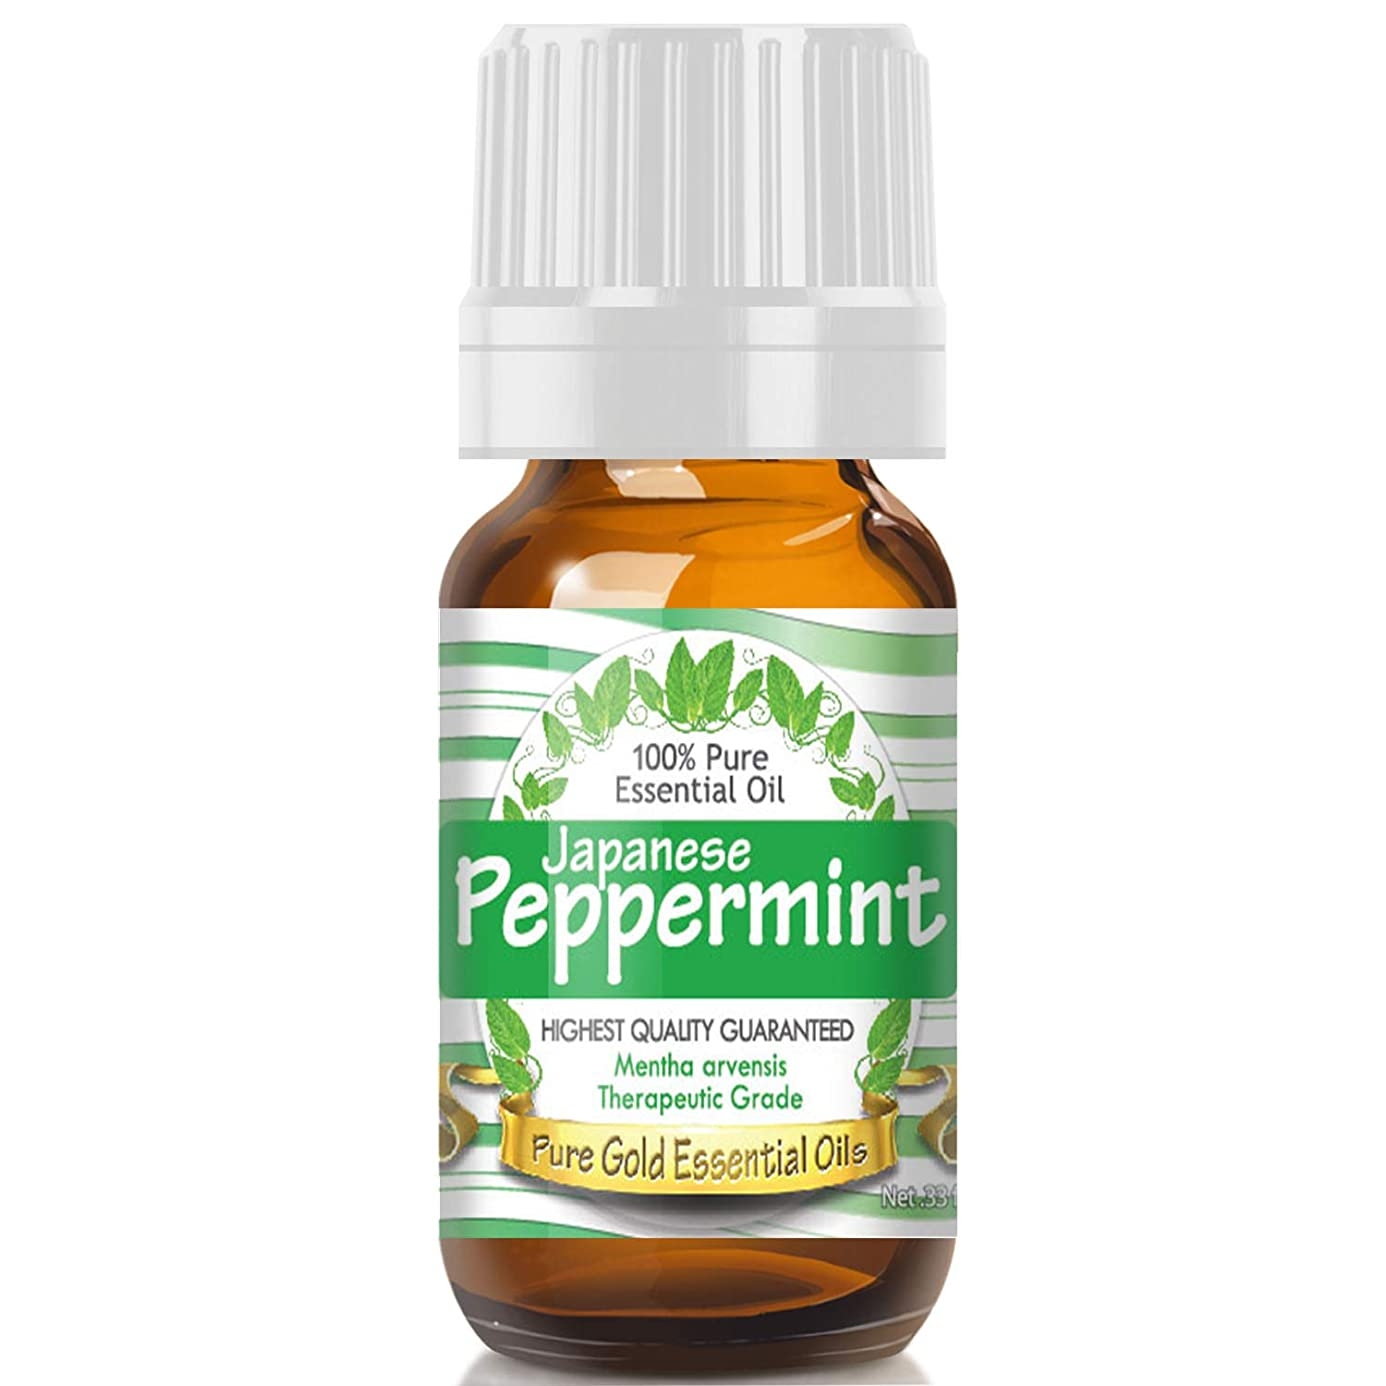 Japanese Peppermint Essential Oil (100% Pure, Natural, UNDILUTED) 10ml - Best Therapeutic Grade - Perfect for Your Aromatherapy Diffuser, Relaxation, More! hfp4208607